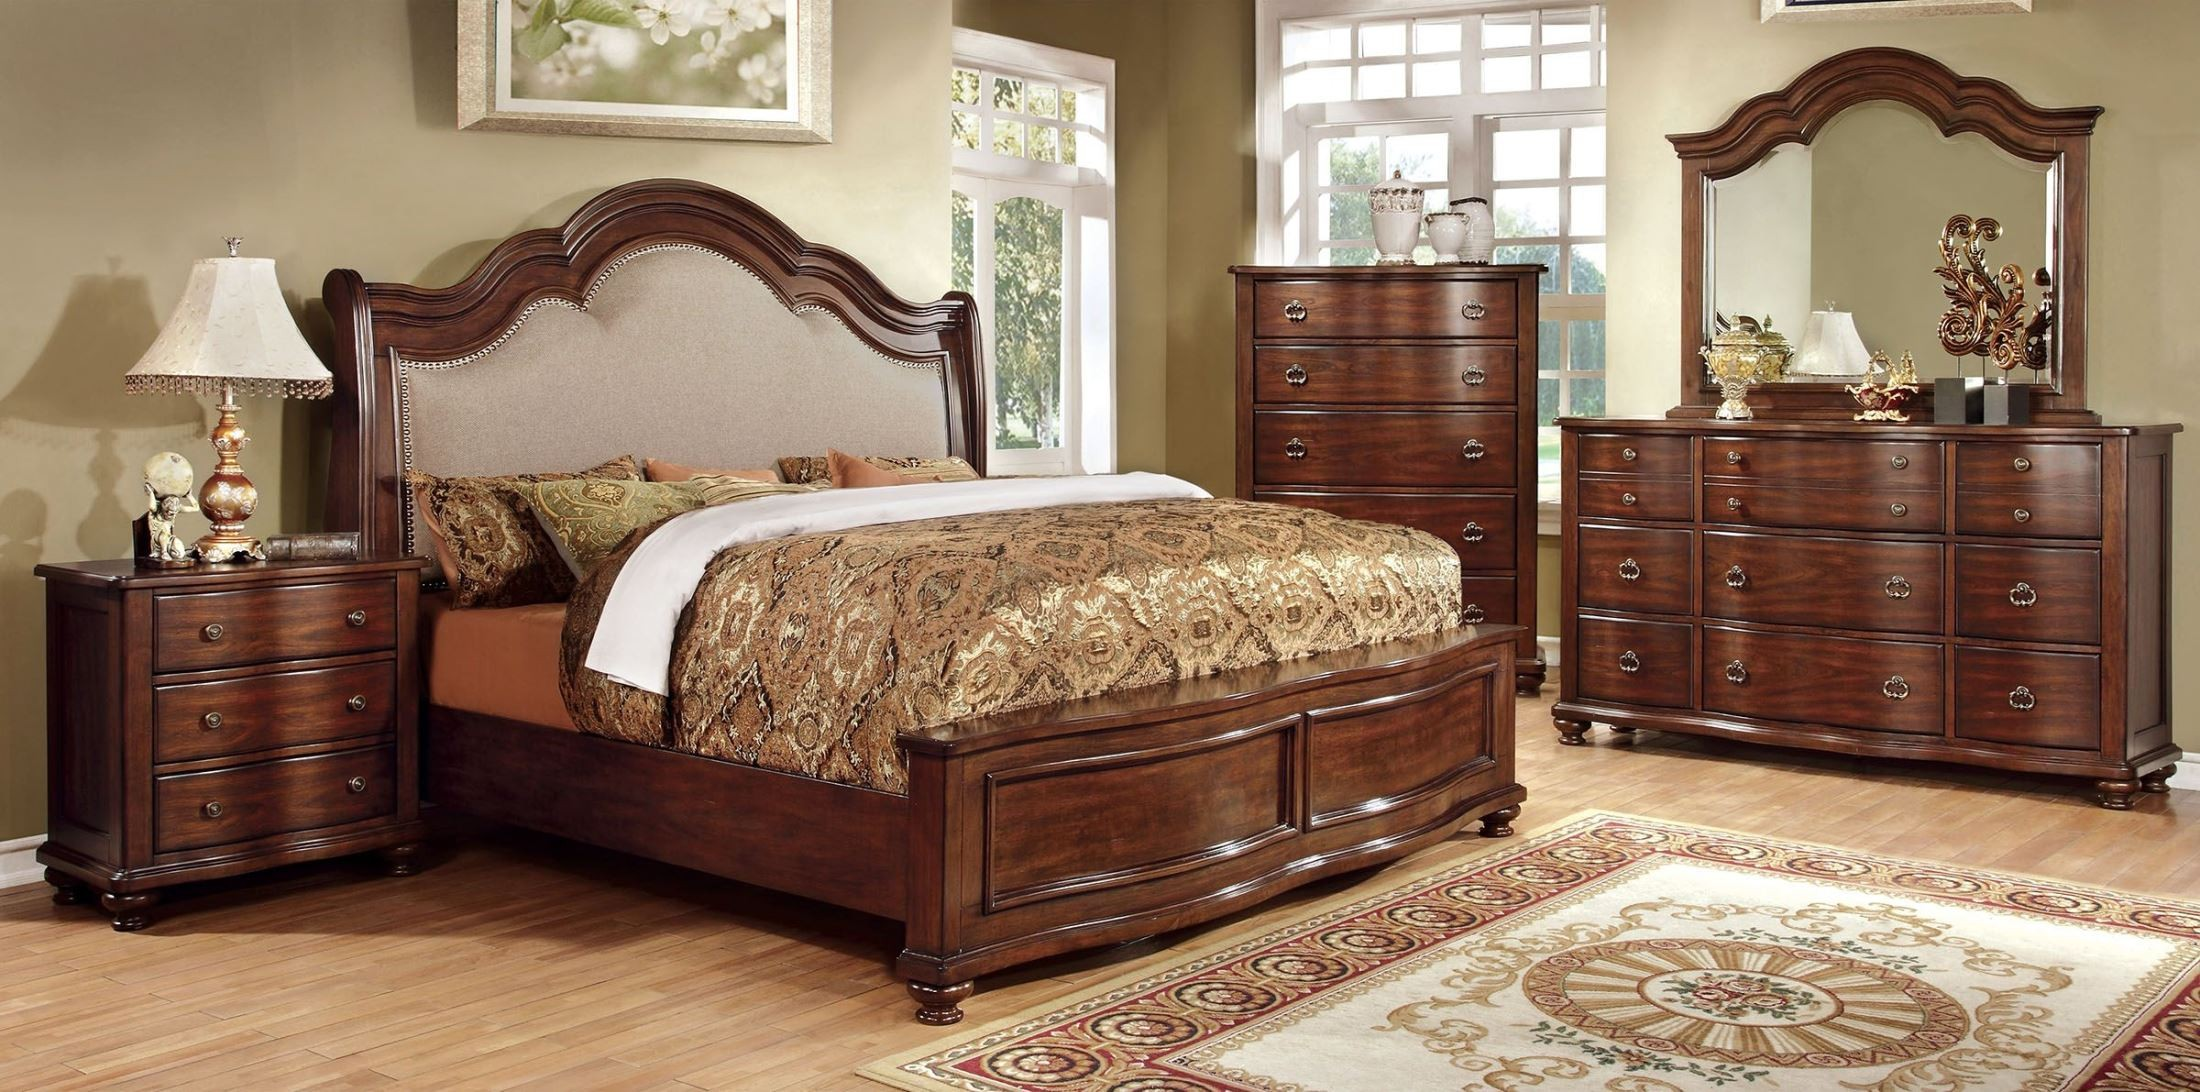 Bellavista Brown Cherry King Bed from Furniture of America